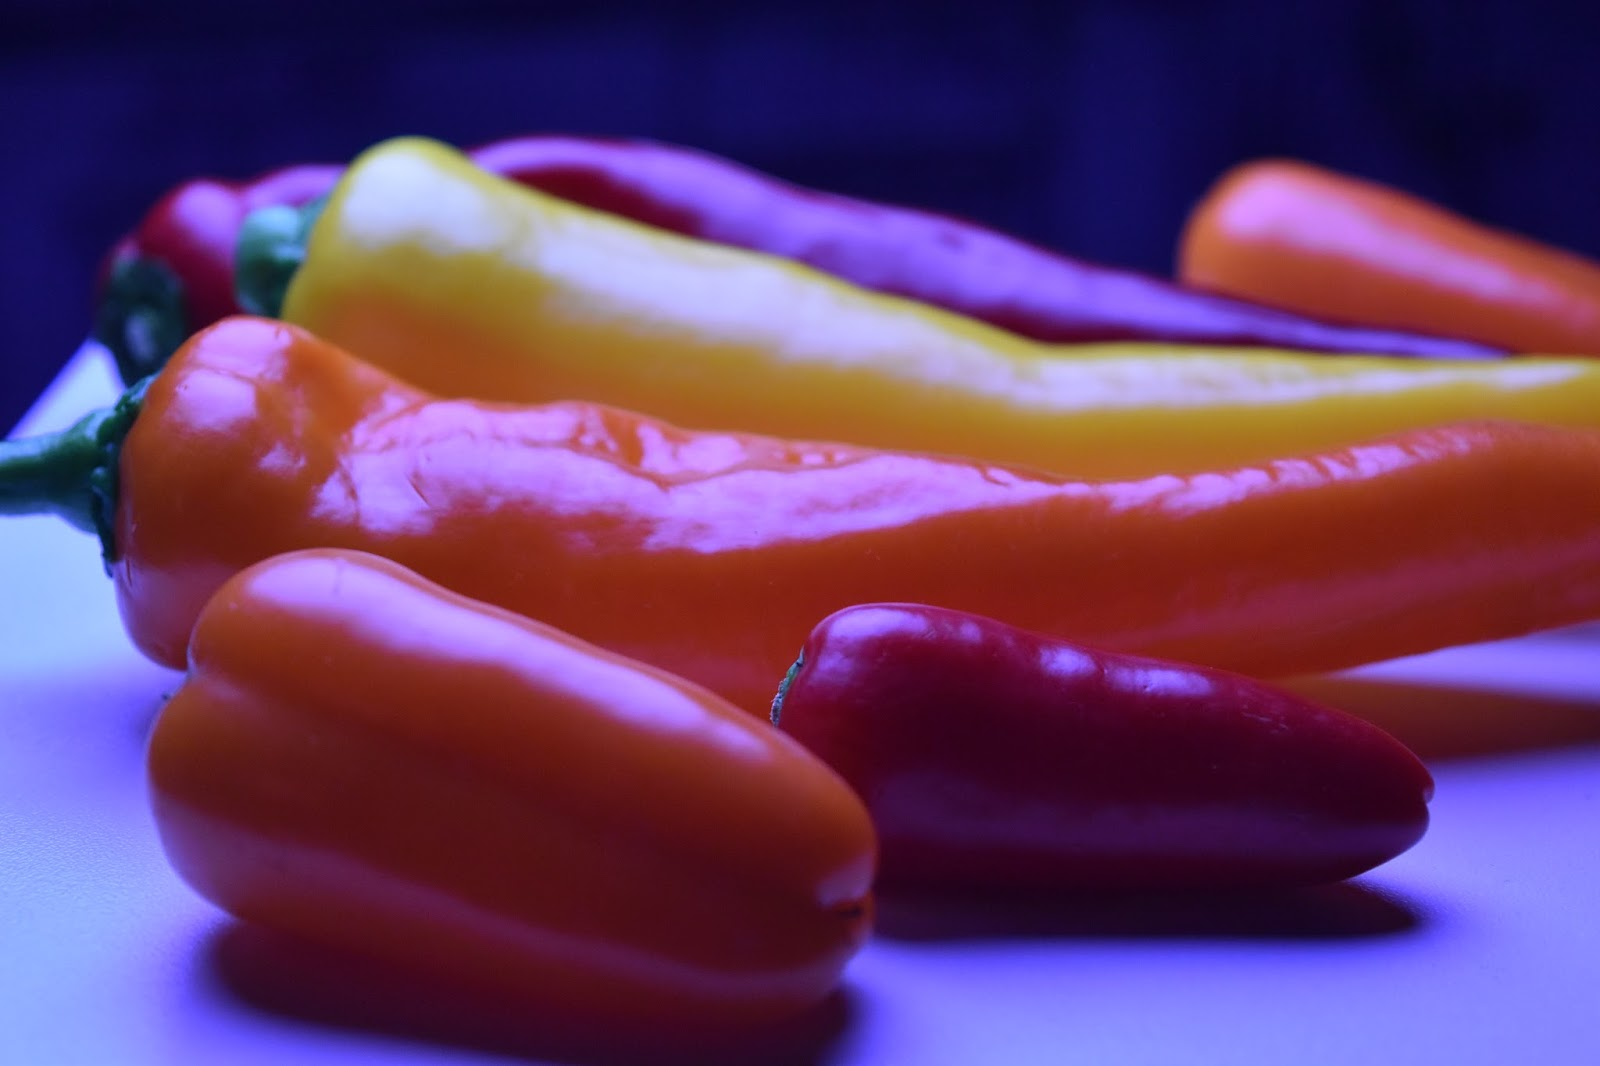 The peppers had quite a strong blue light shining on it and it the usual settings there was no way of getting it u0027whiteru0027. & Beginneru0027s Guide To Using A DSLR Camera + How To Shoot in Low ... azcodes.com